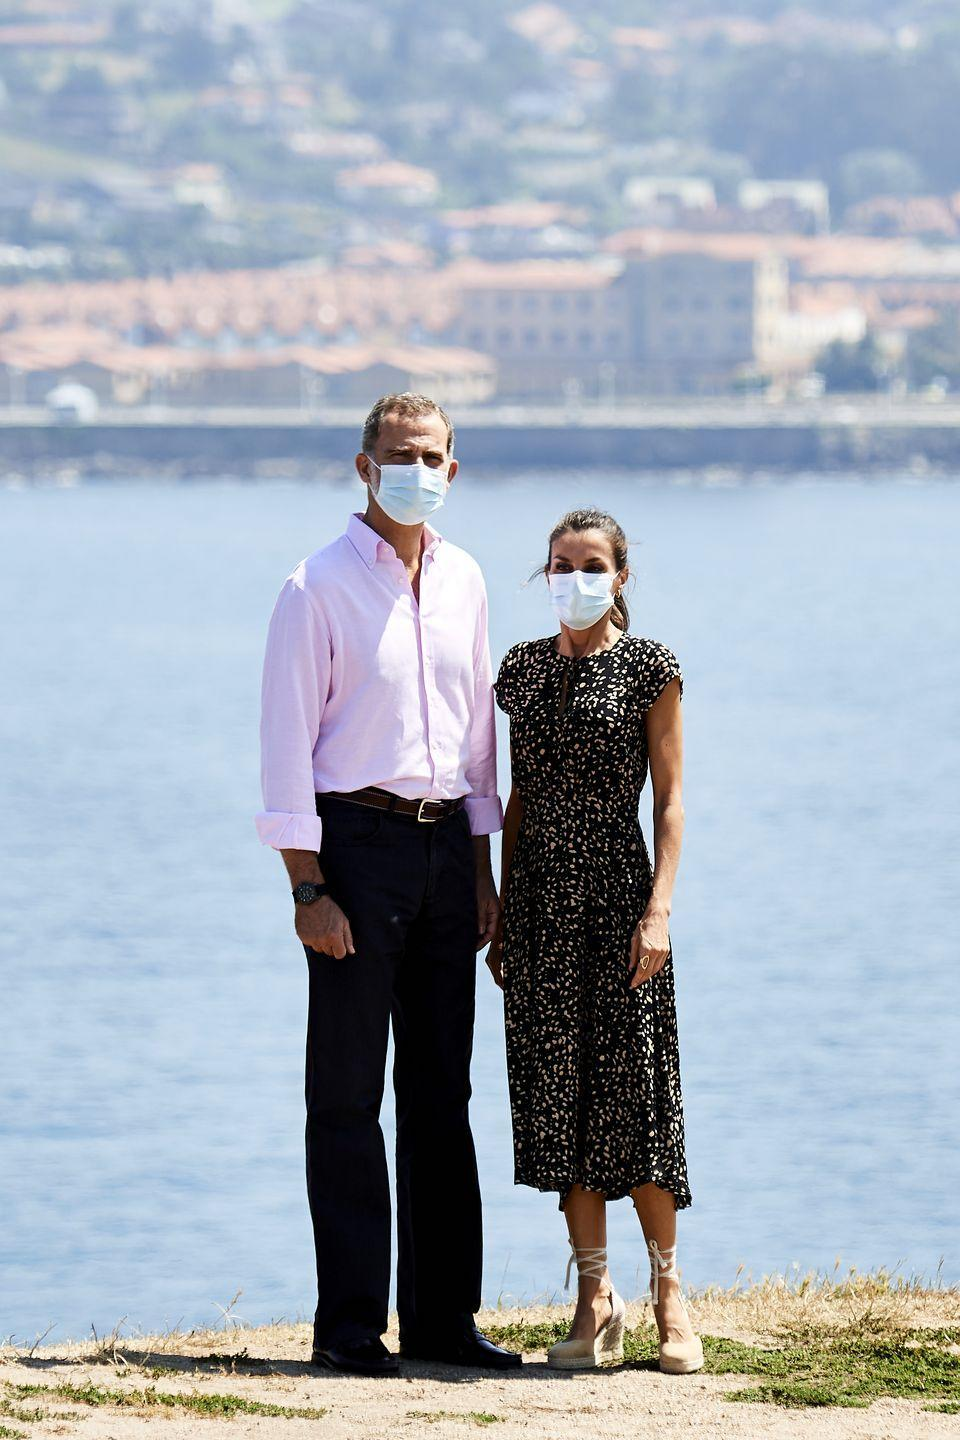 <p>Queen Letizia of Spain and her husband, King Felipe, are seen during a visit to Cerro de Santa Catalina in Gijon, marking the end of their royal tour. The Queen stepped out in a flowy black summer dress, complete with a beige speckled design. She completed the look with her signature espadrille wedges, and, of course, a medical mask. </p>